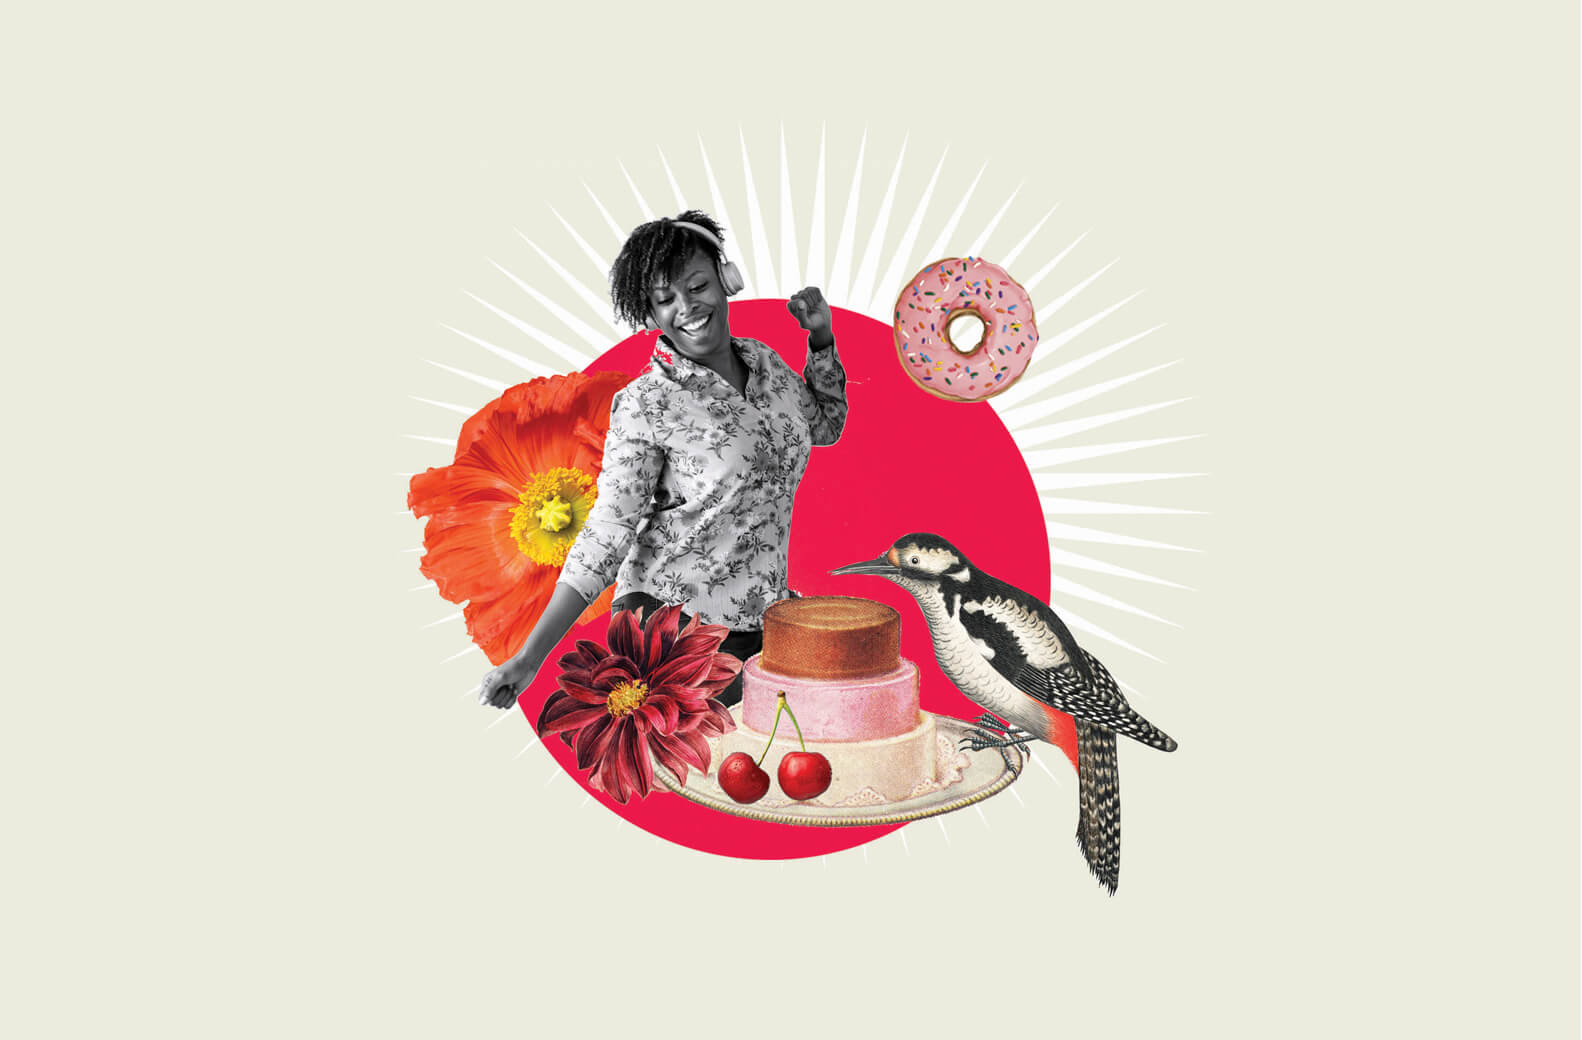 Colourful collage illustration showing a smiling woman, cake and bird